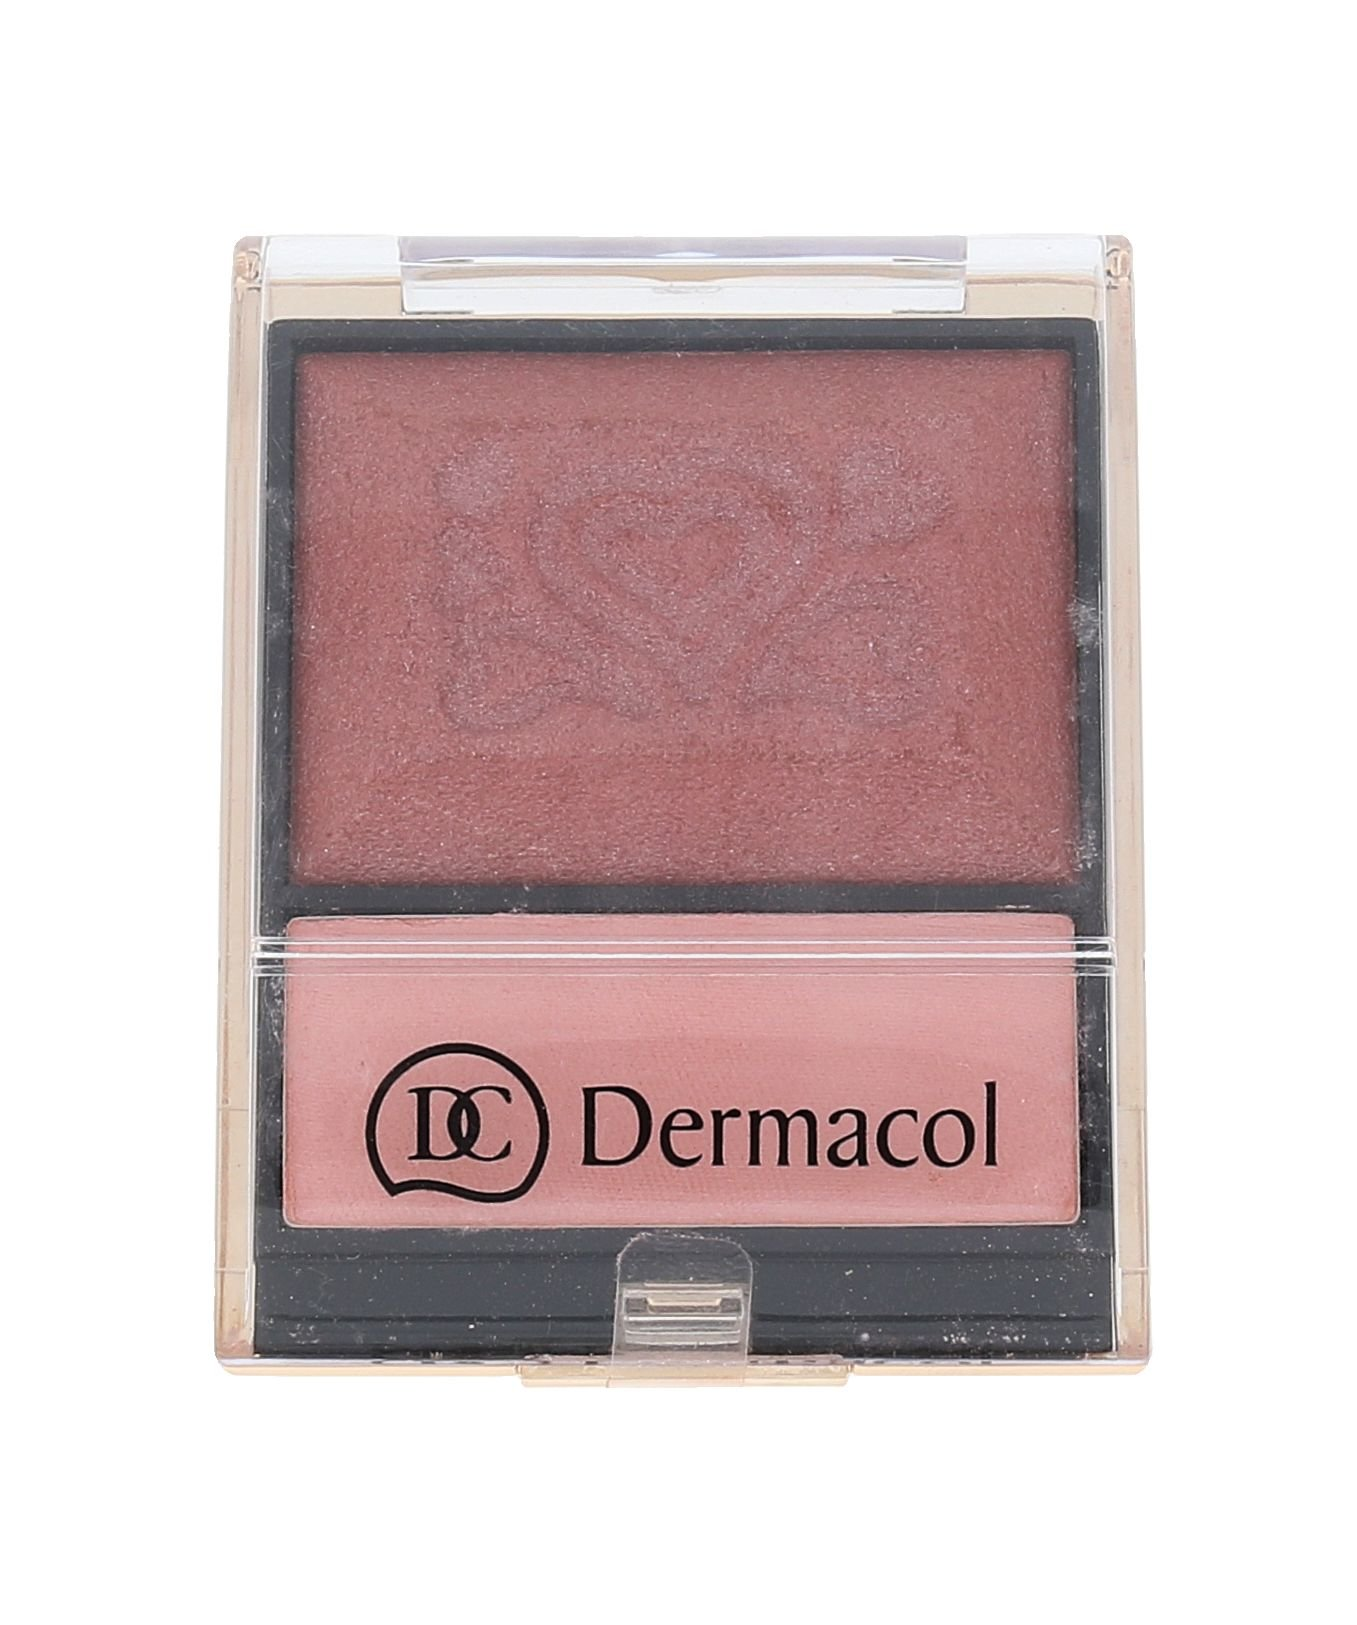 Dermacol Blush & Illuminator Cosmetic 9ml 7